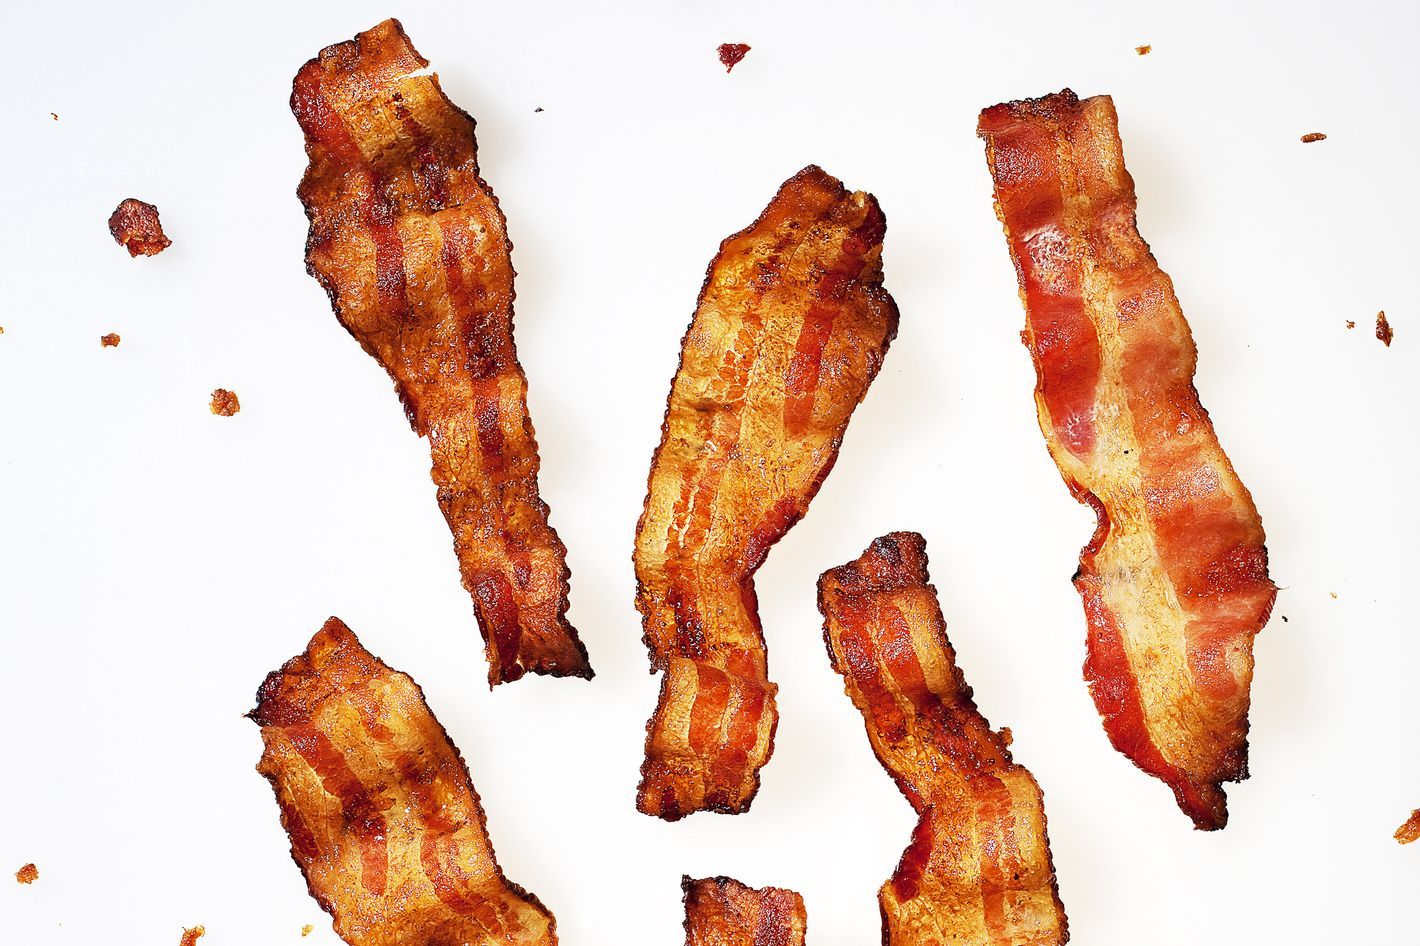 We hear this bacon stuff is getting trendy.